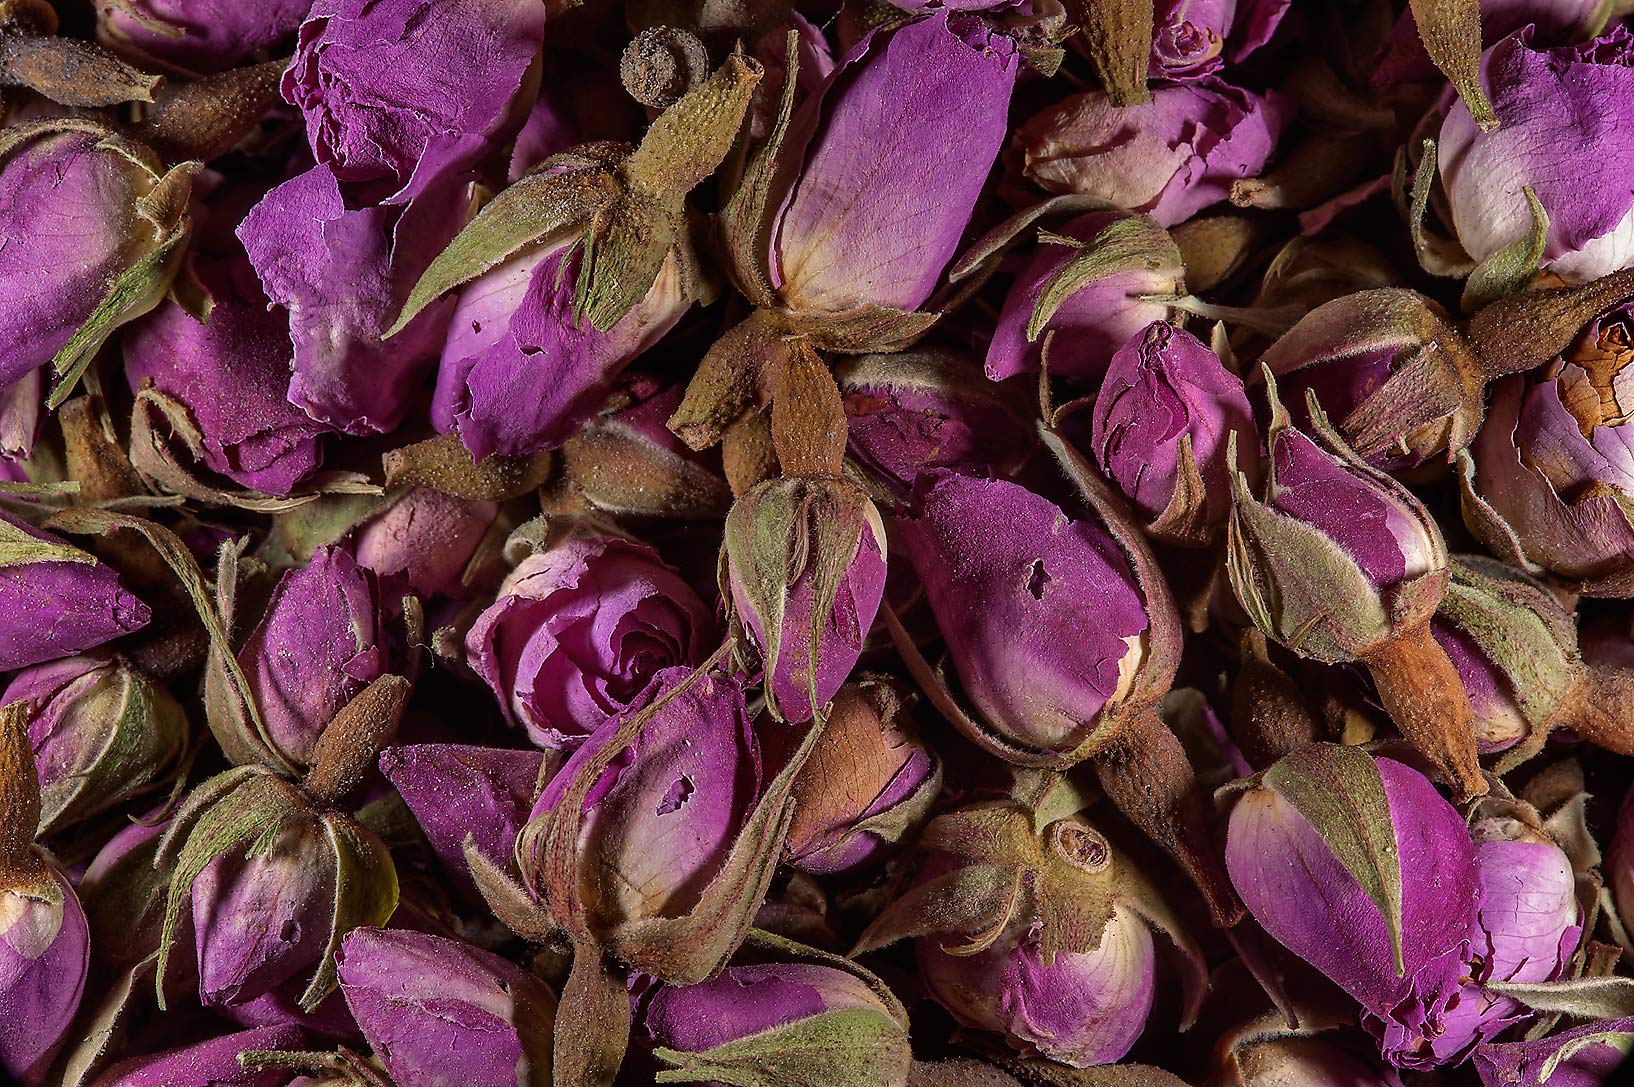 Rose flower in spice section in Souq Waqif (Old Market). Doha, Qatar